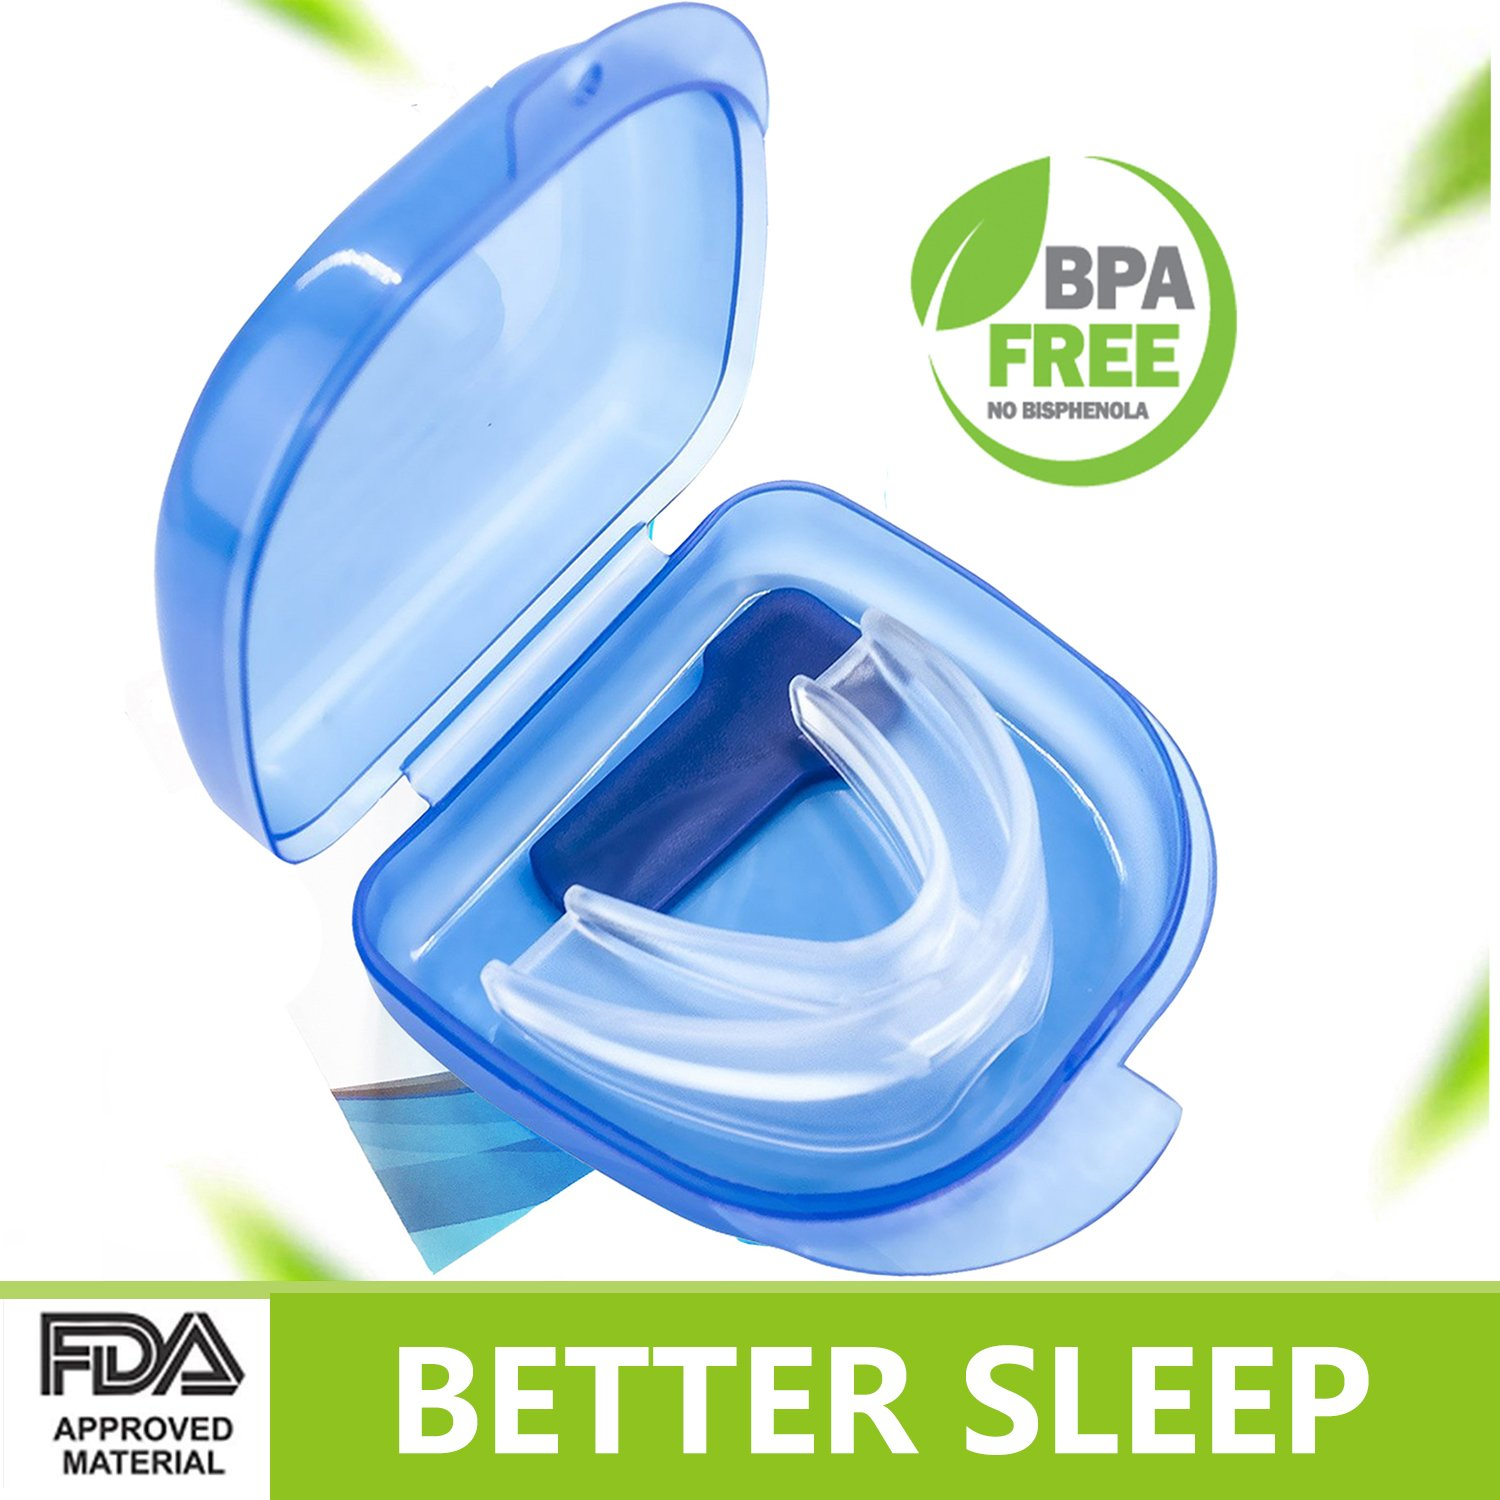 Snoring Solution Anti Snoring Mouthpiece, Mouth Guards for Teeth Grinding Sleep Aid Custom Fit Night Snore Reducing Dental Guard with Case for Sleeping